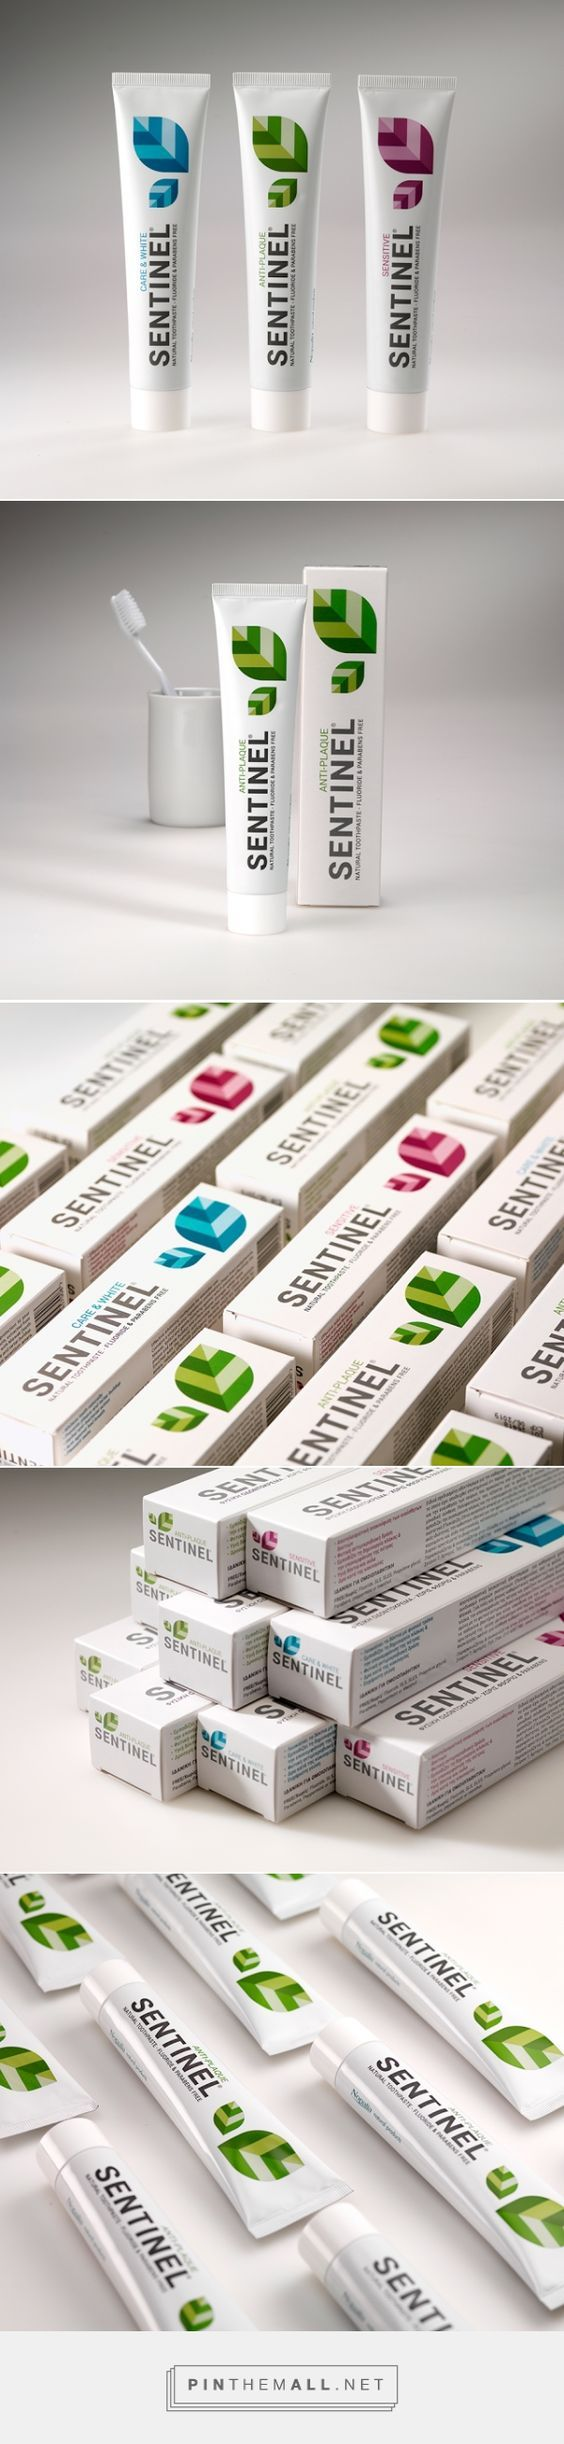 Sentinel Natural Toothpaste on   Packaging of the World - Creative Package Design Gallery  - http://www.packagingoftheworld.com/2015/07/sentinel-natural-toothpaste.html: